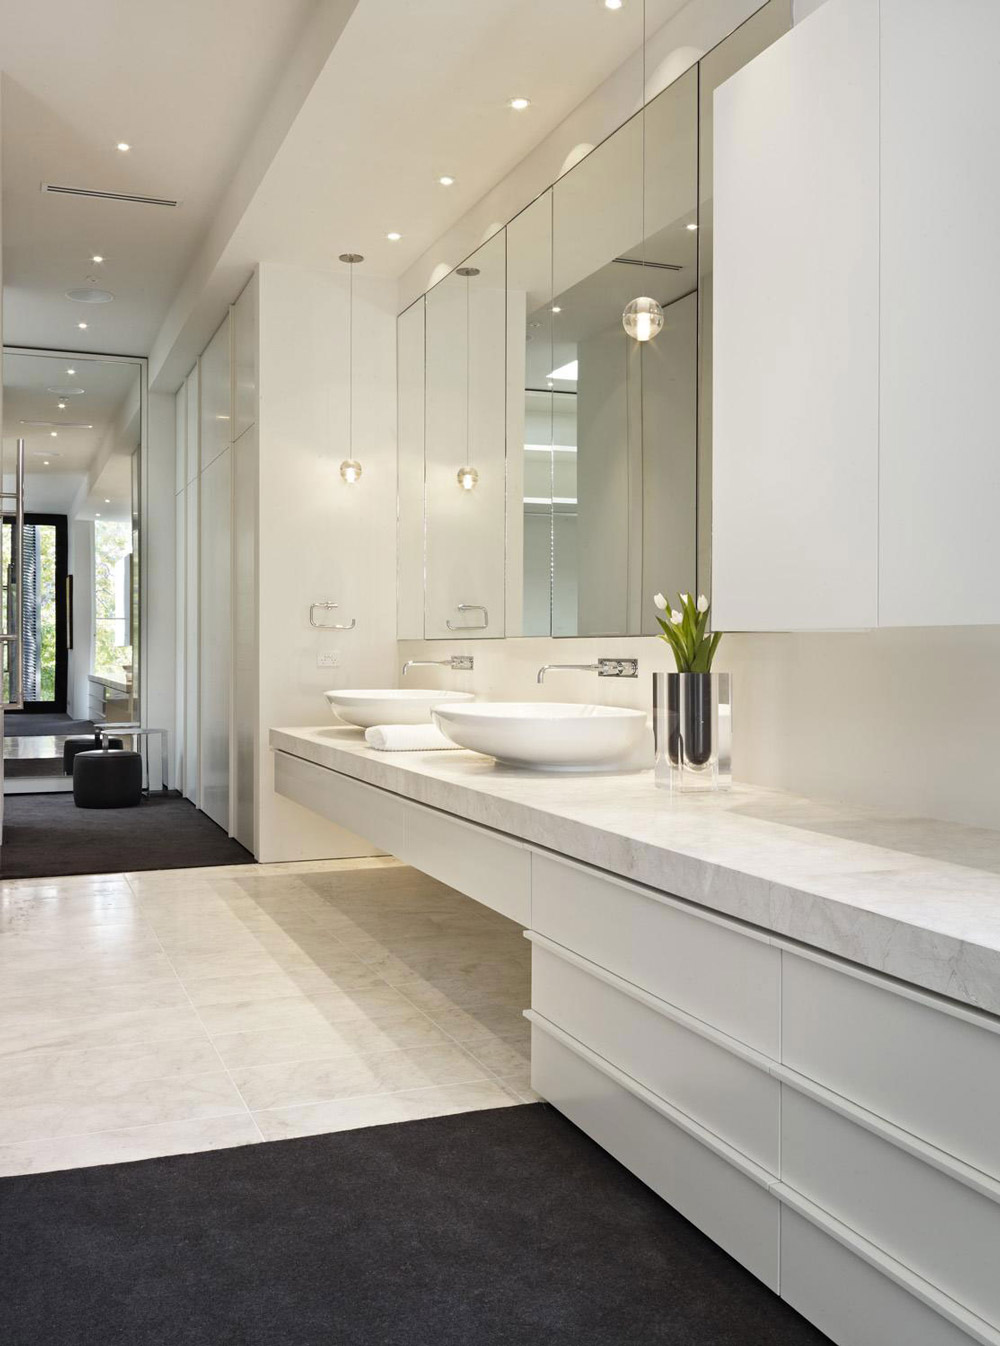 Bathroom sinks verdant avenue home in melbourne for Bathroom designs melbourne